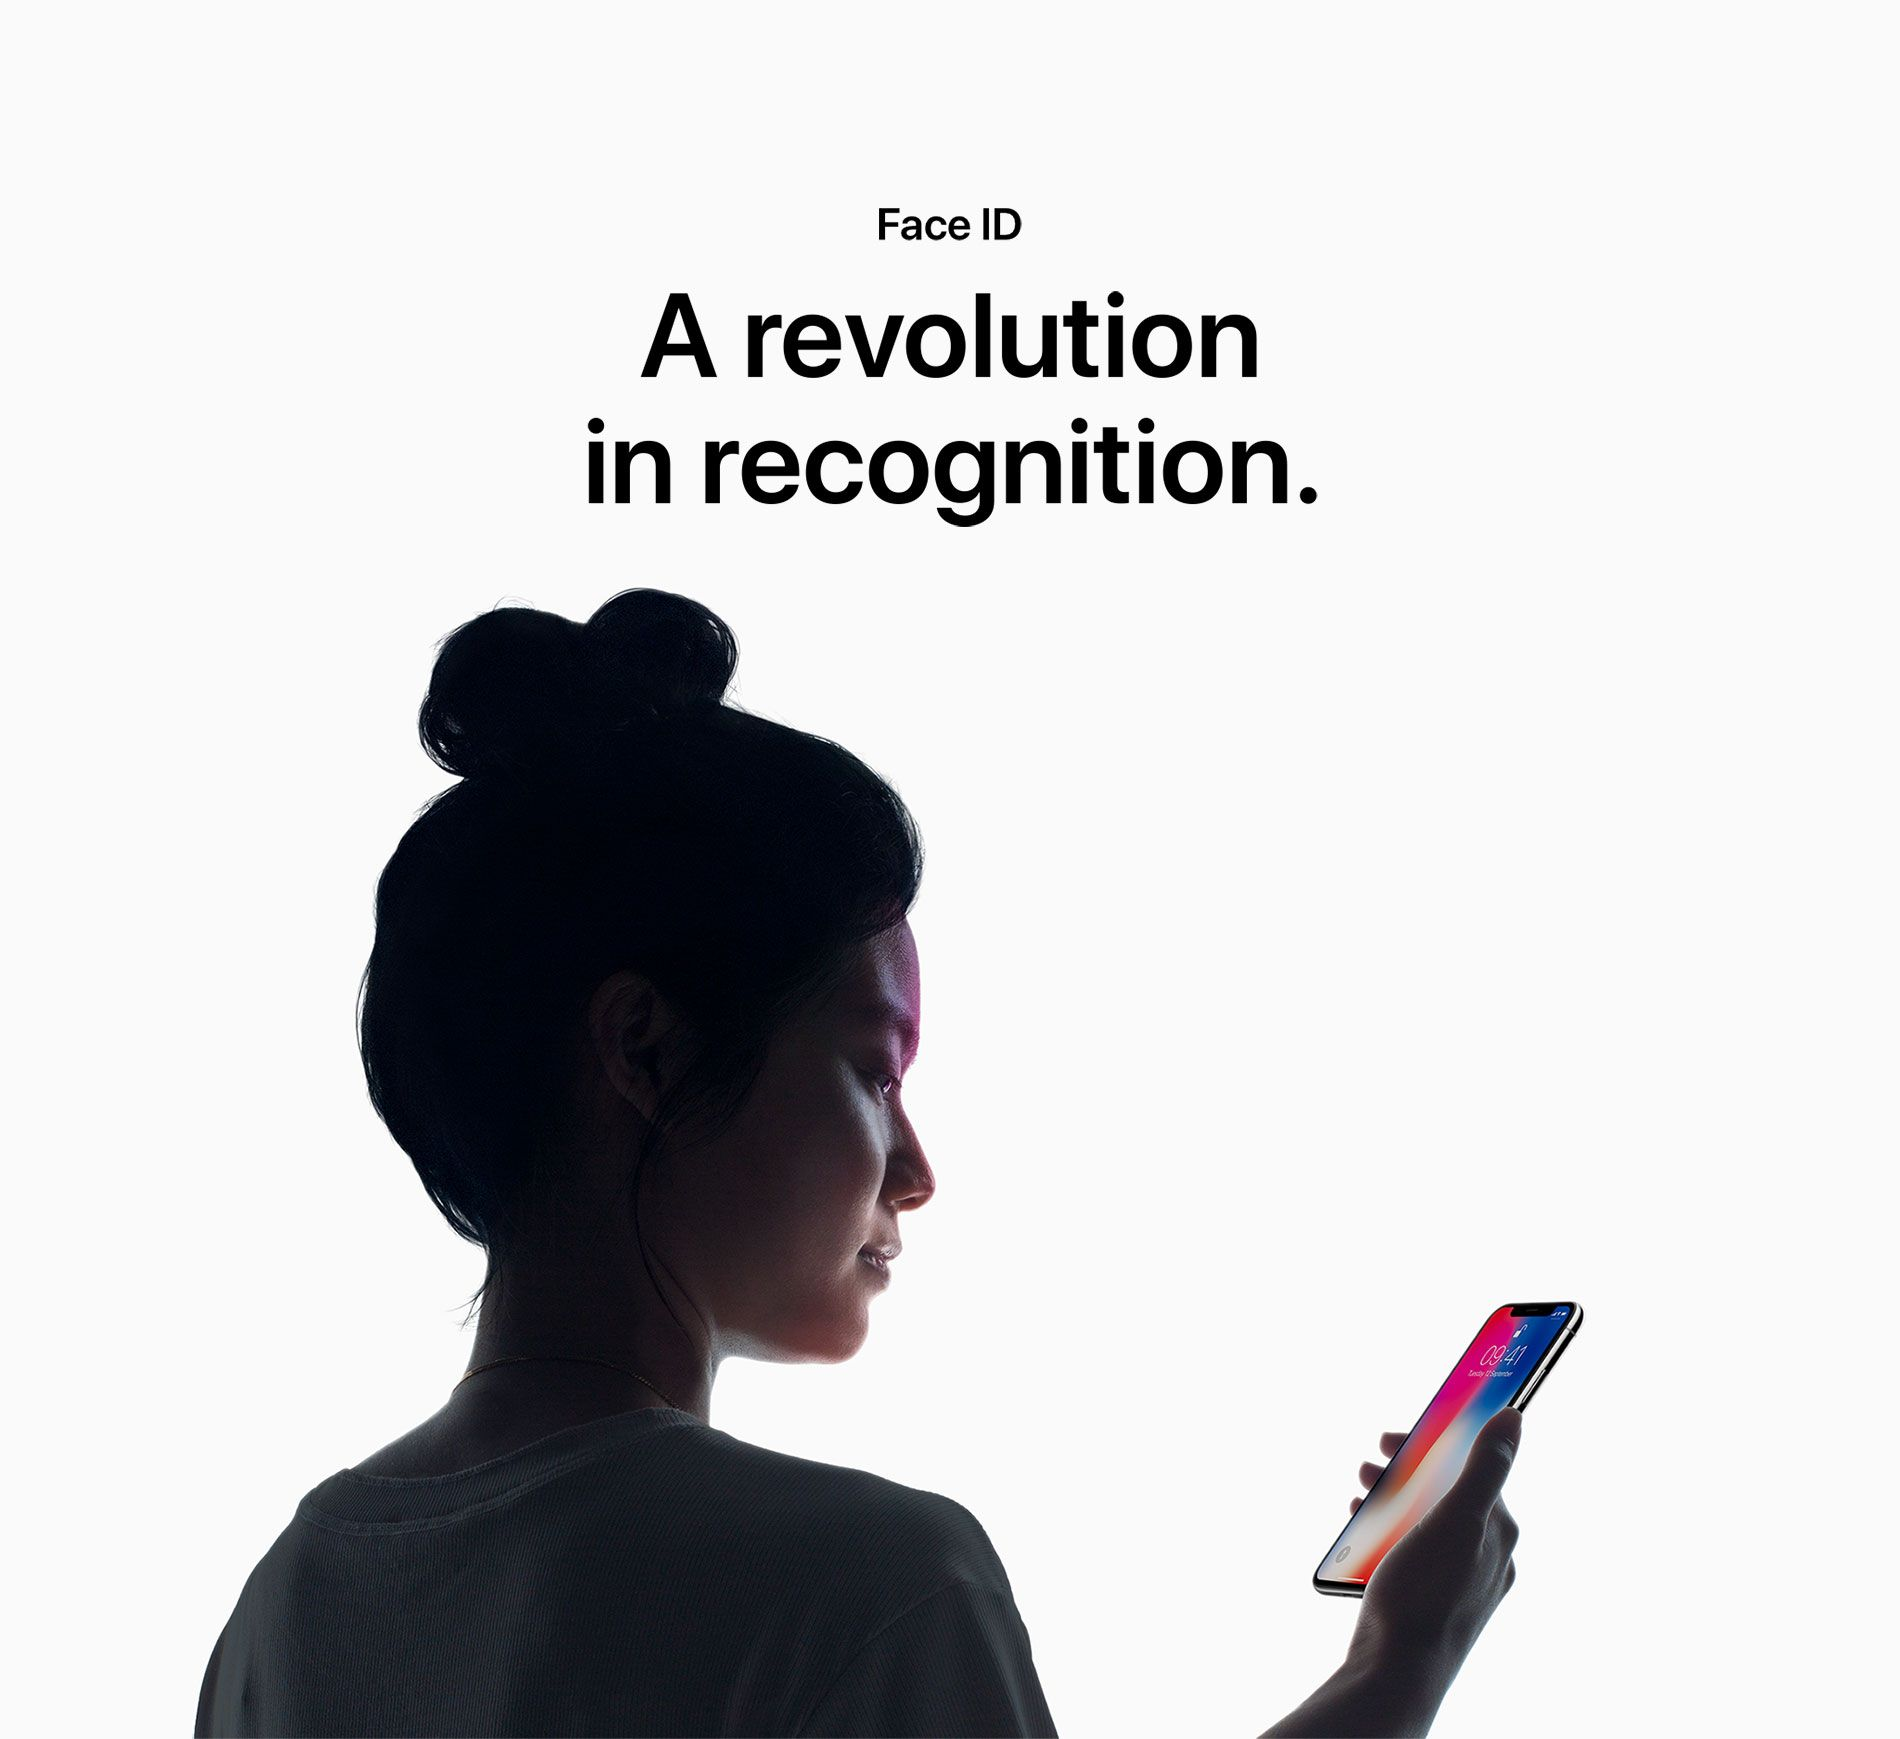 Face ID - A revolution in recognition.